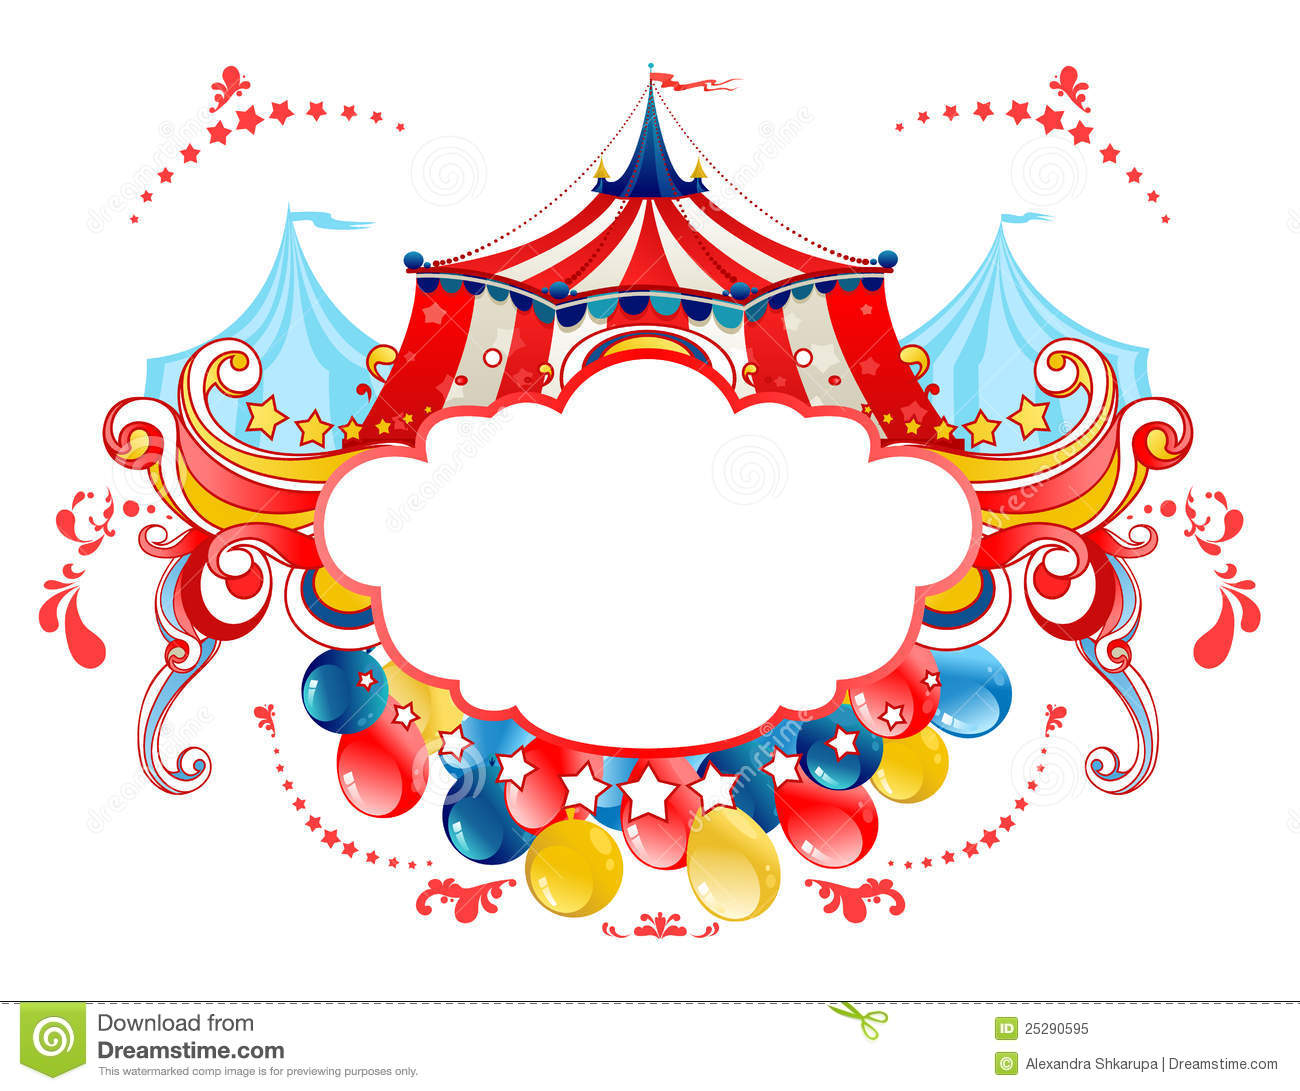 Tent clipart pixel art Party Circus 1 091 Carnival